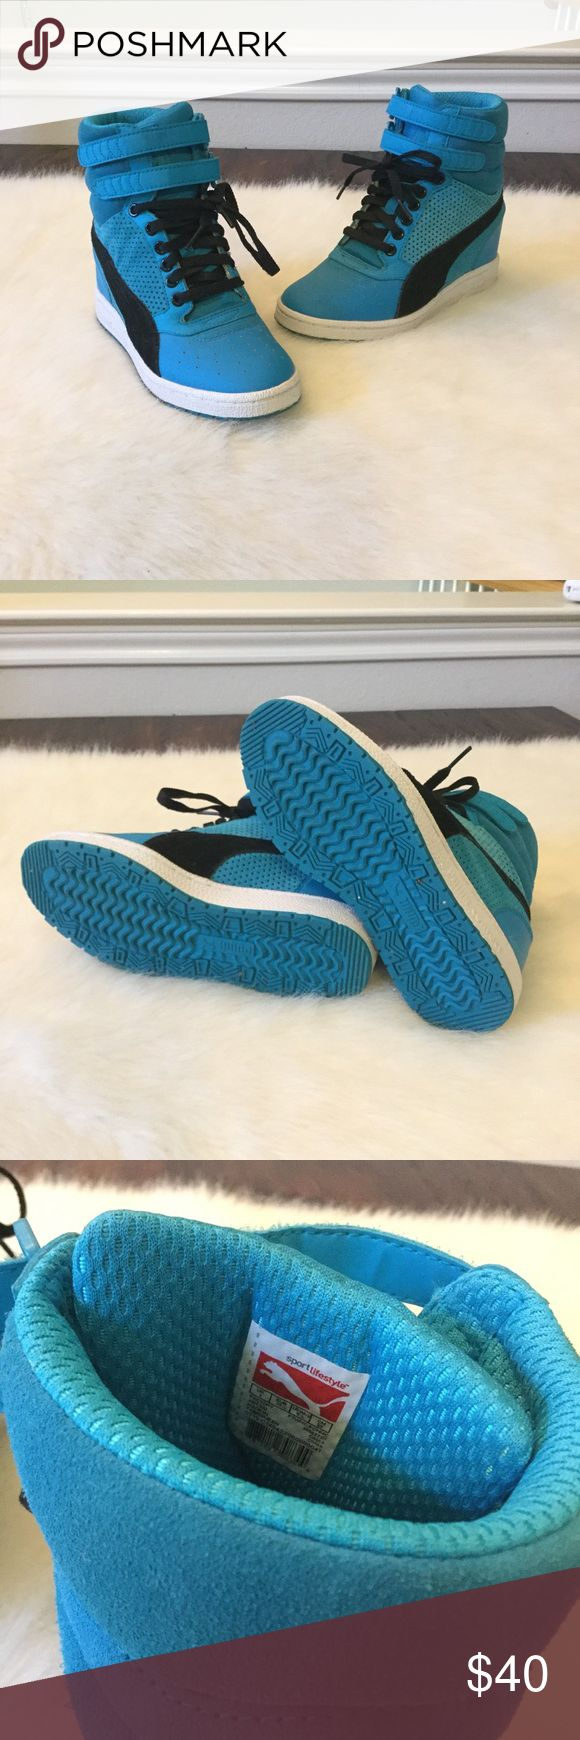 Blue Puma Sneaker wedges EUC Blue Puma sneaker wedges. Great condition, very minor wear. Rarely worn. Runs big, can fit 5.5 to 6 ✨ Puma Shoes Sneakers